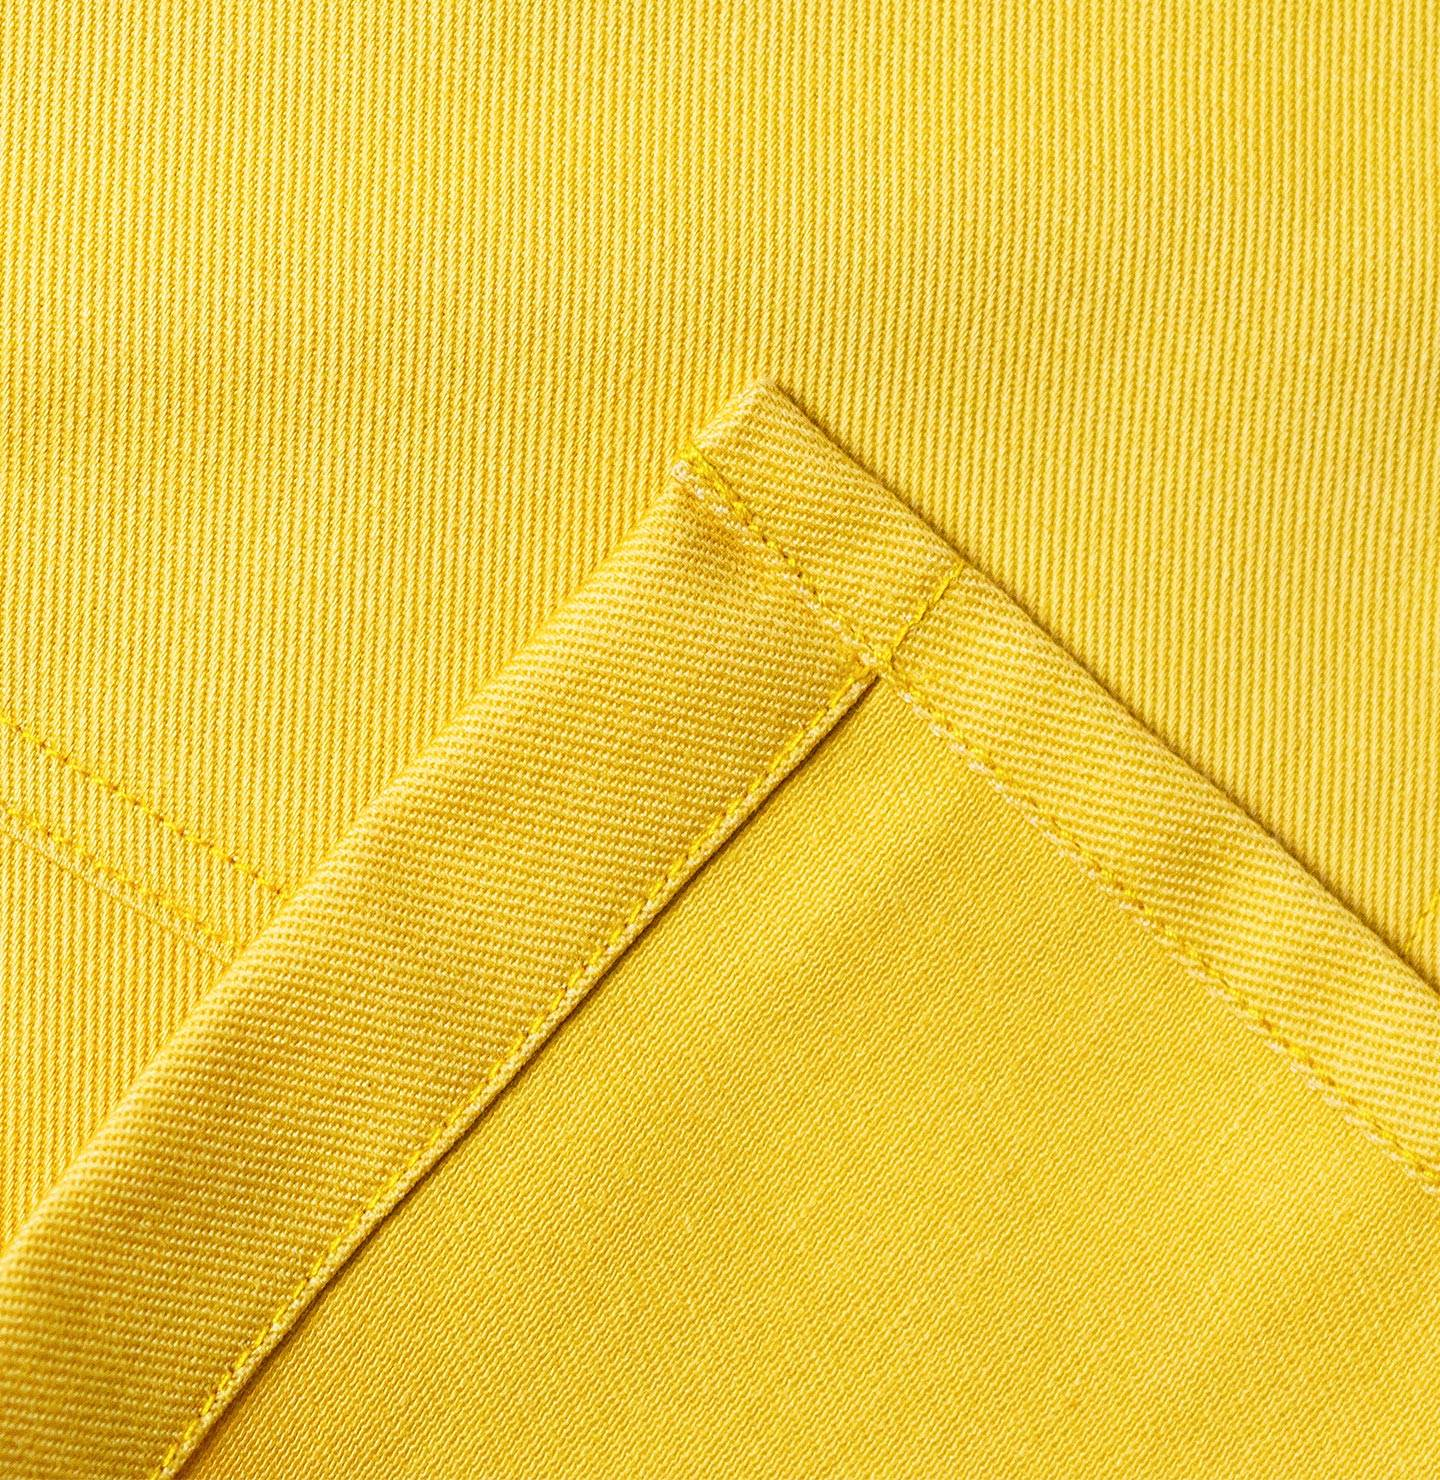 Double Stitched for Double Reinforcement